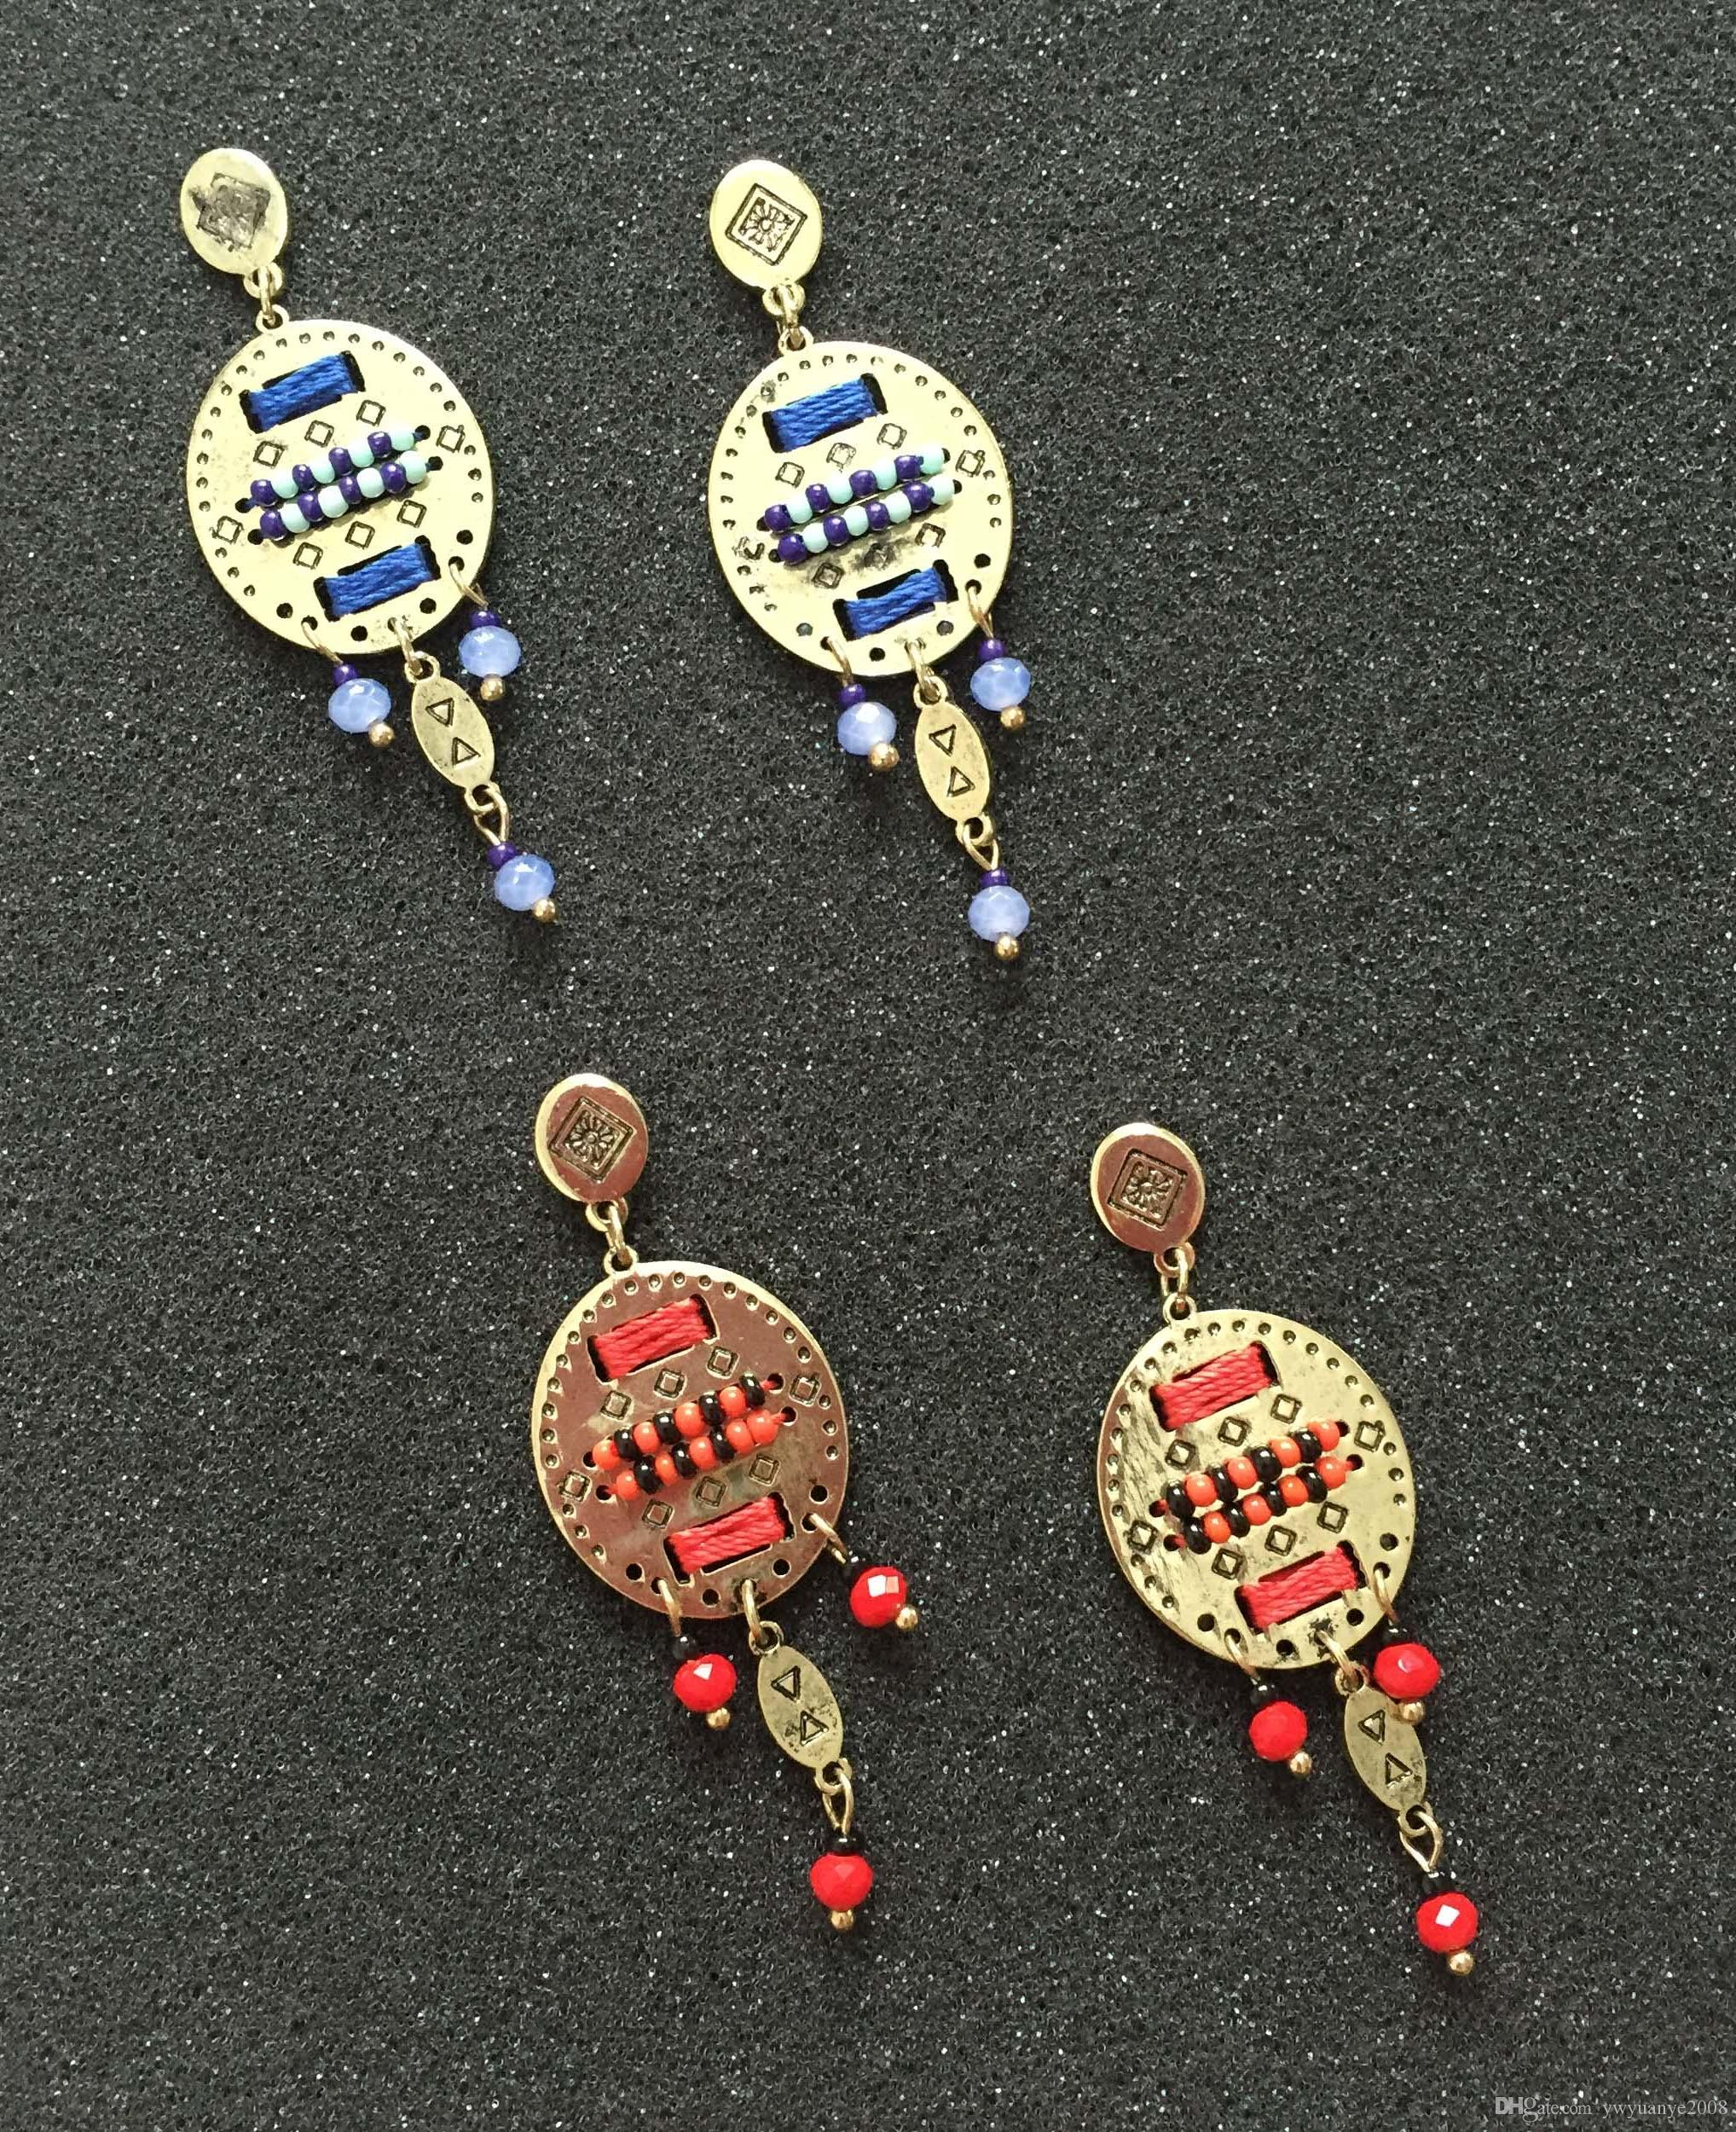 Best new delicate superbeads bohemia chandelier earrings with glass best new delicate superbeads bohemia chandelier earrings with glass beads dangles ethnic style tiny beads earrings thread wired factory design under 097 arubaitofo Gallery